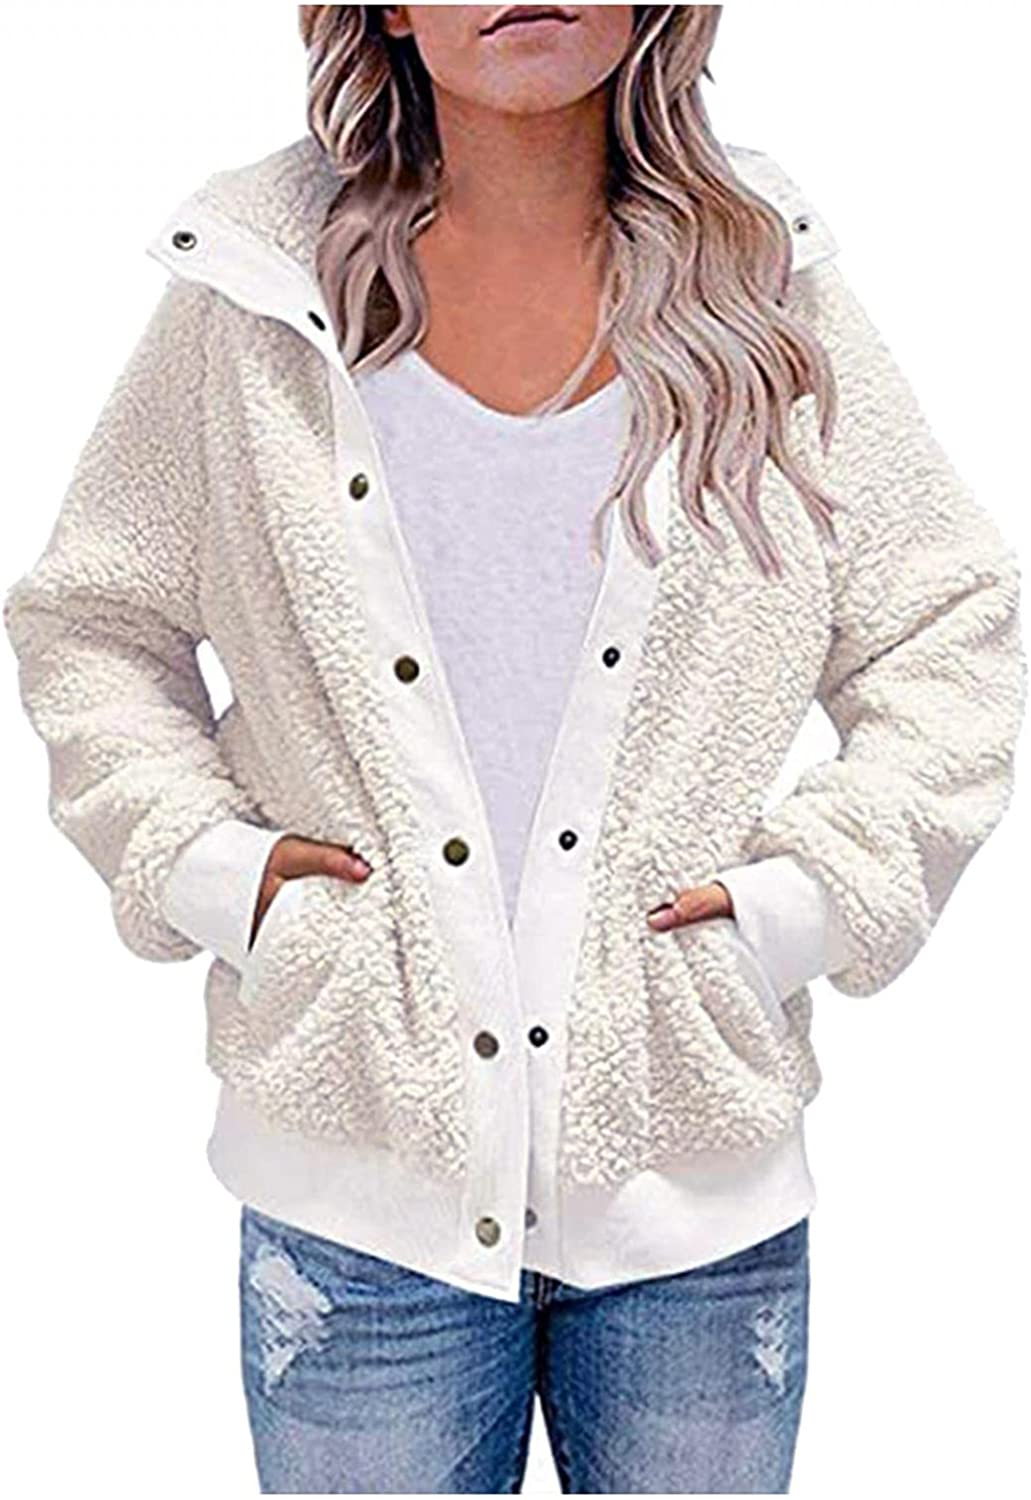 FGDJEE Cardigan Sweaters for Women Winter Warm Plush Thick Button Long-Sleeved Cardigan Coat Outwear with Pockets